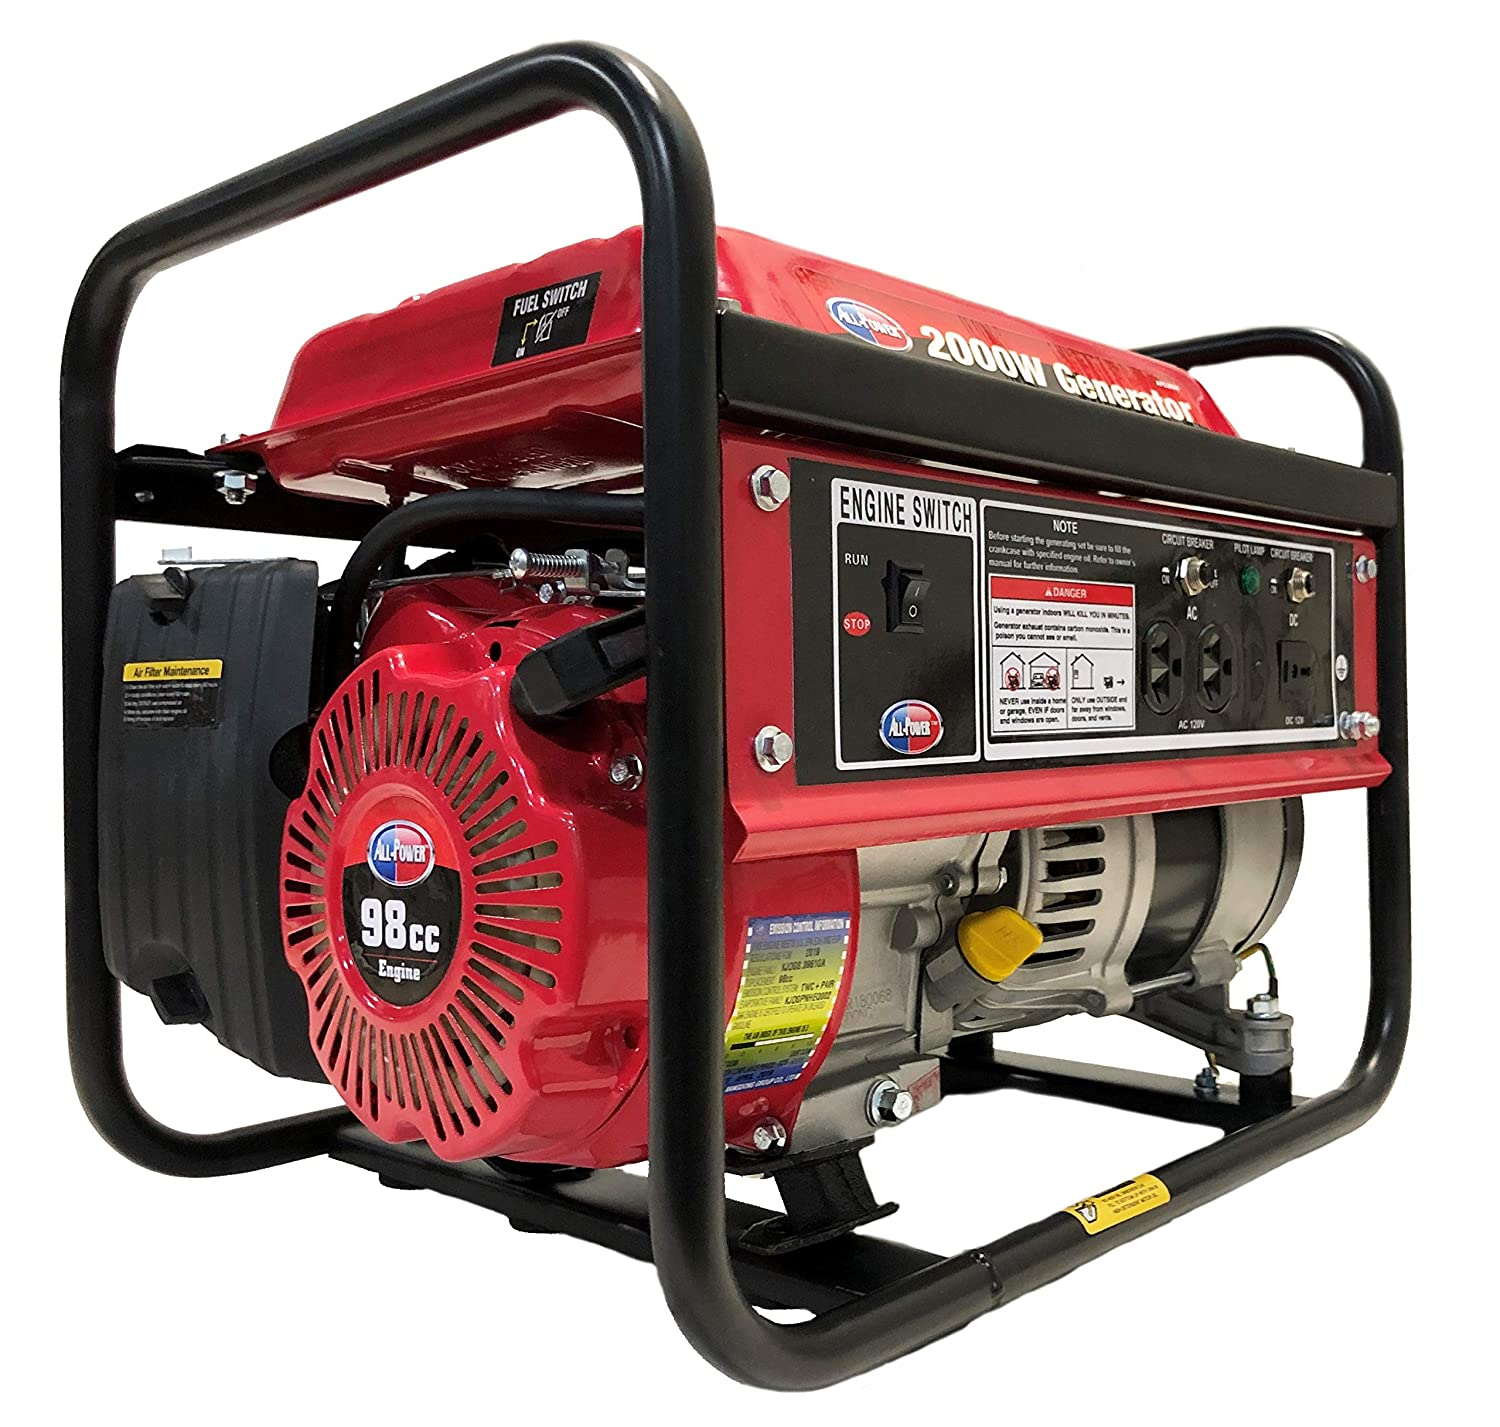 Top 10 Best Portable Generator (2020 Reviews & Buying Guide) 4